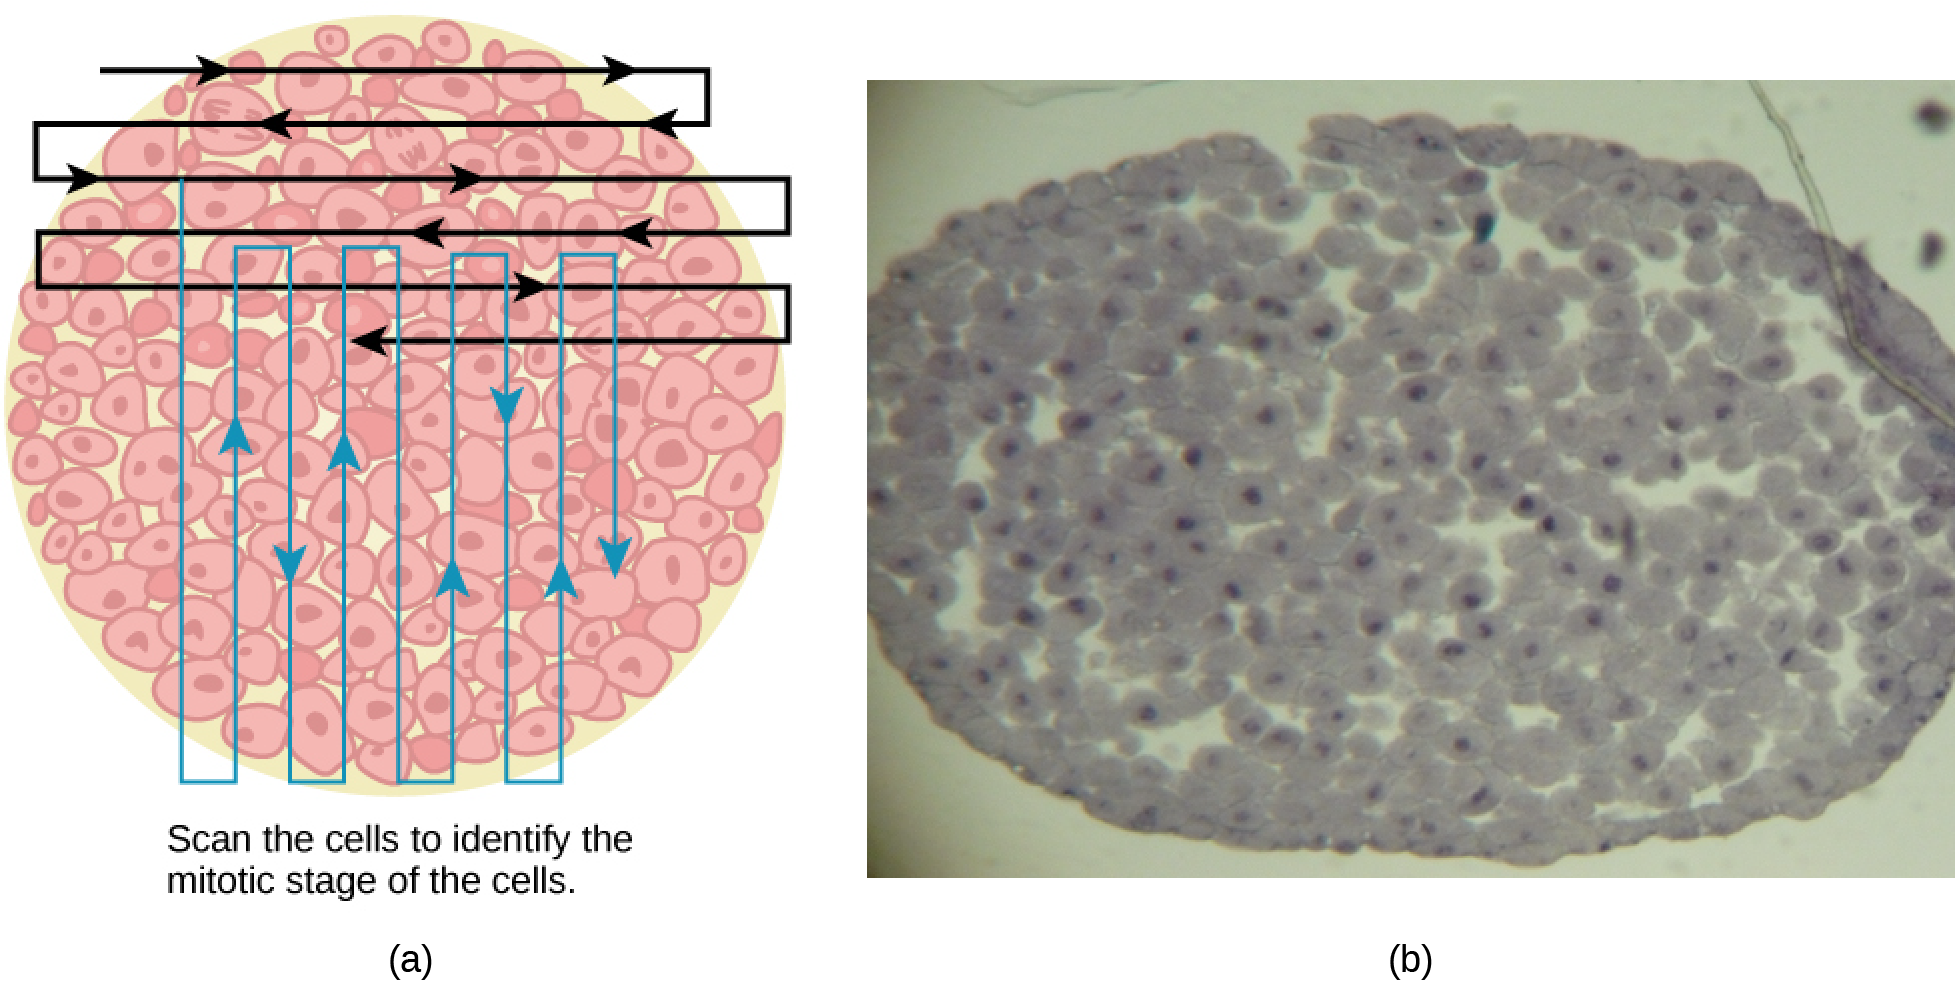 Left: This figure shows an illustration of whitefish blastula cells with a scanning pattern from right to left, and from top to bottom. Right: A micrograph of whitefish blastula cells in various phases of the cell cycle is shown.